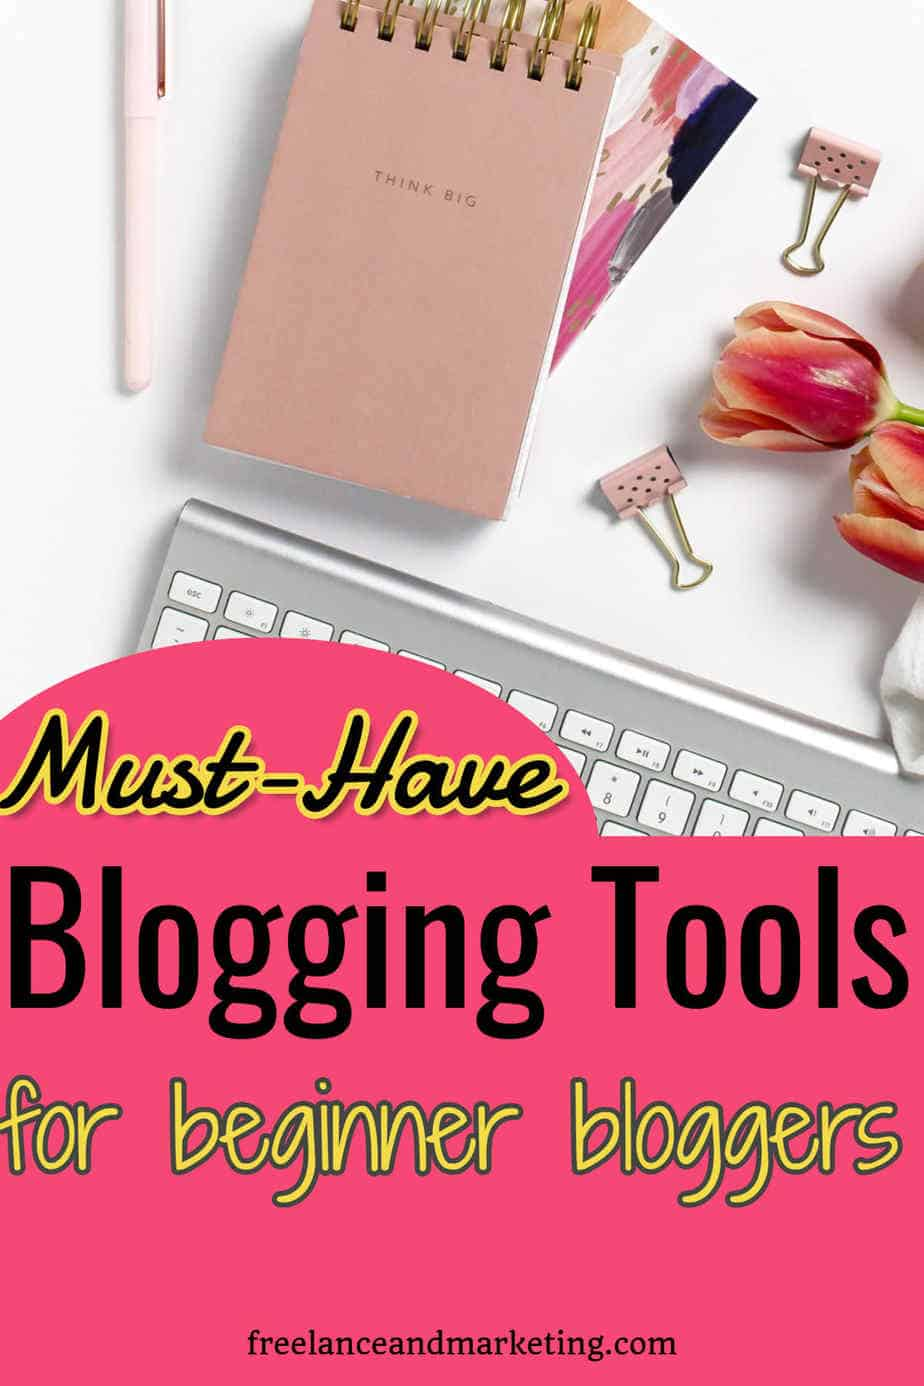 Bloggers have many choices when it comes to their particular tools of the trade. There are free and paid tools. Depending on your experience and financial ability, one tool or software might work better than the other. Choose your tools wisely to help you move your blog forward and put you on the path of success. Don't let the many choices for tools and software paralyze you. #bloggingforbeginners #beginnerblogger #bloggingtools #freesoftware #freebloggingtools